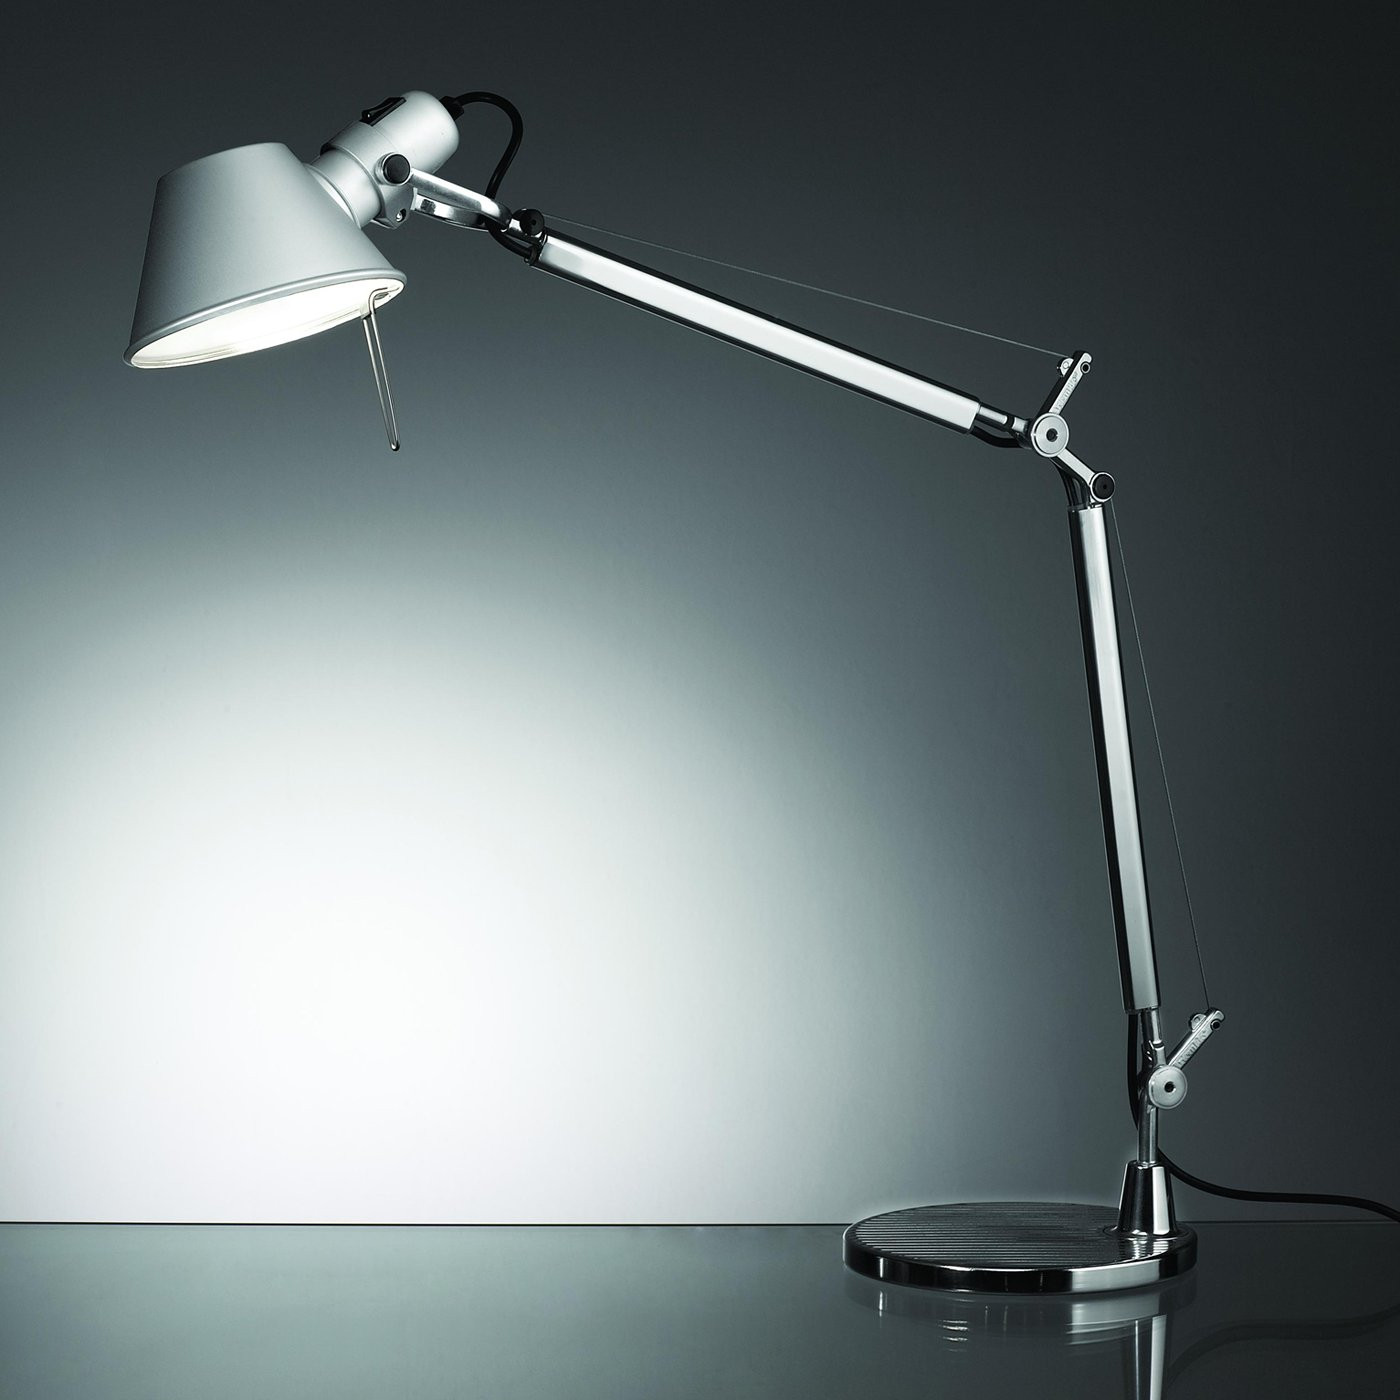 Best ideas about Best Desk Lamp . Save or Pin Our Top 5 Desk Lamps for Your fice Now.